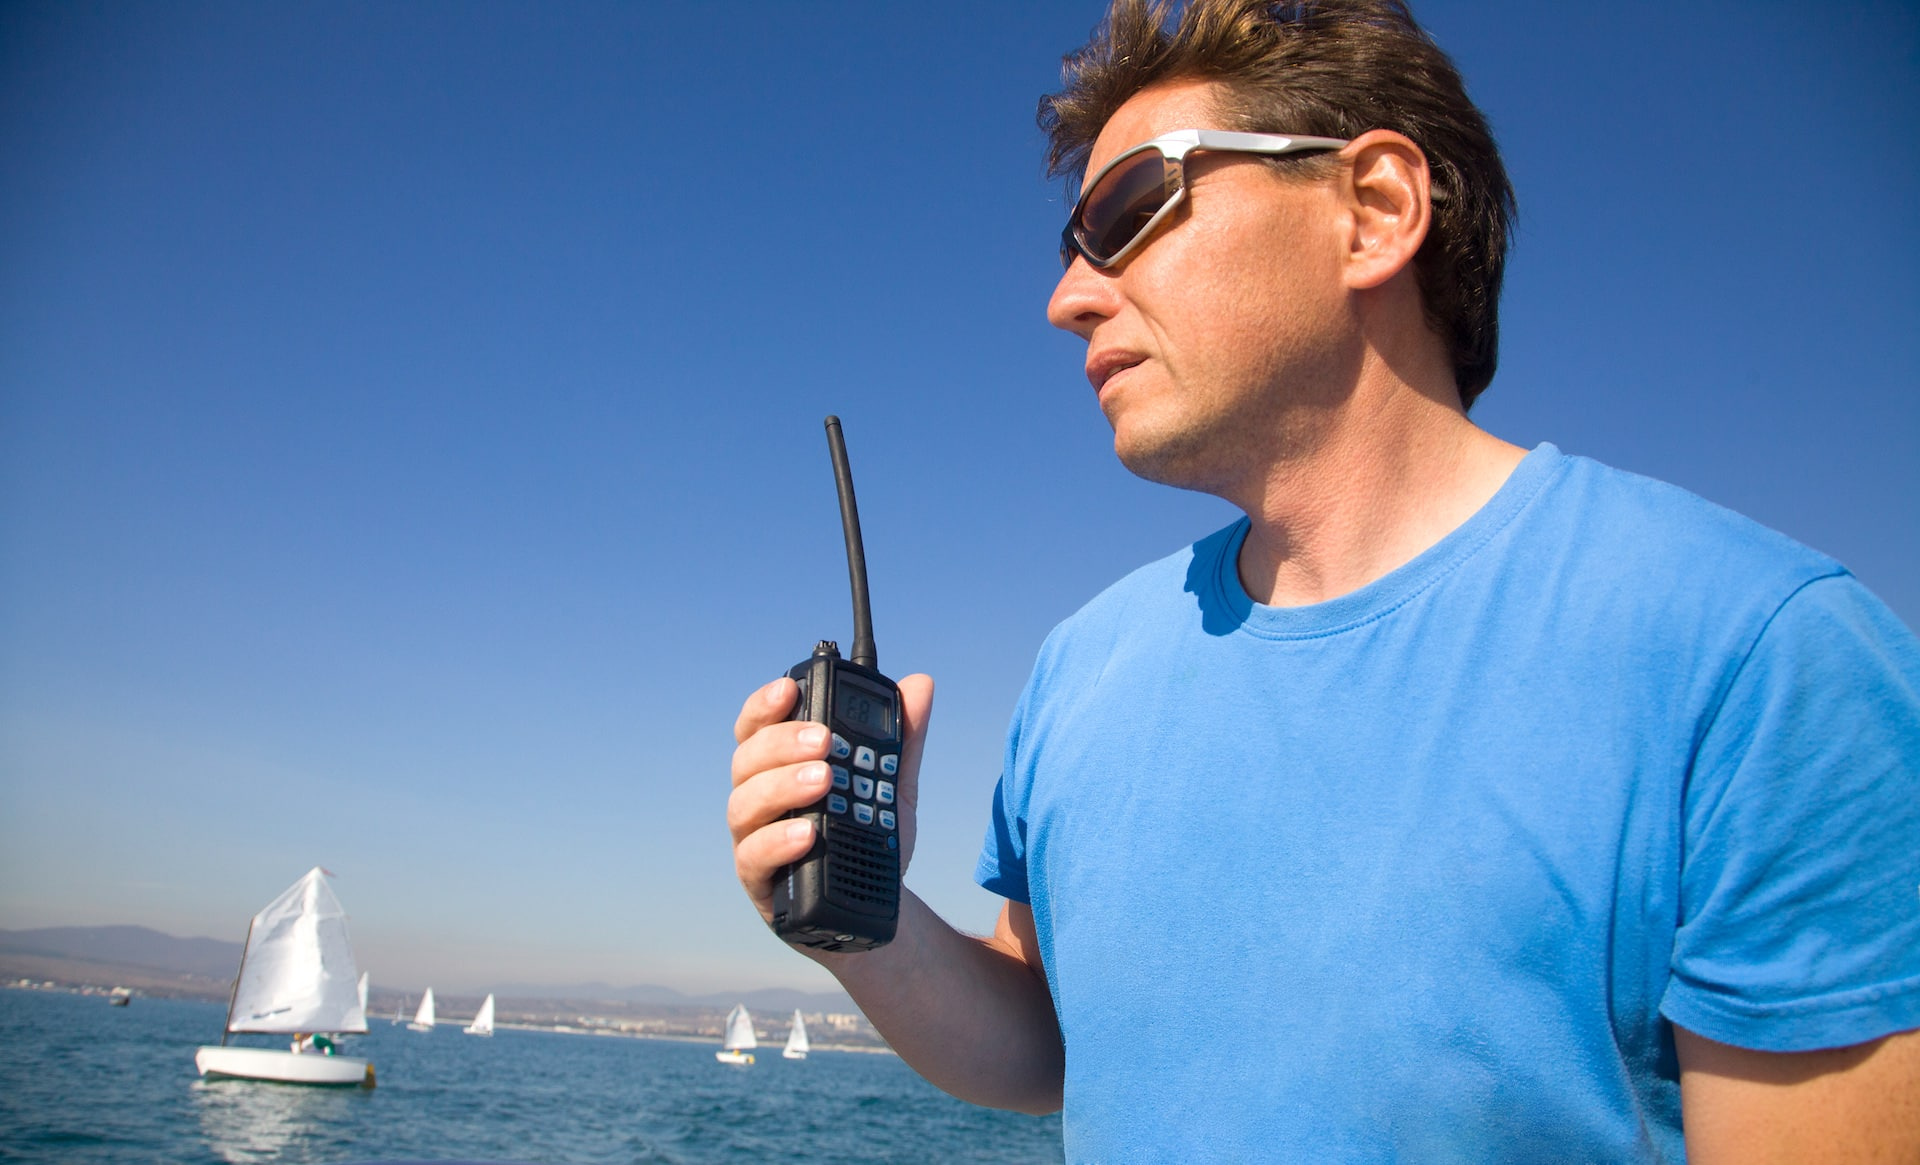 vhf radio spearfishing equipment